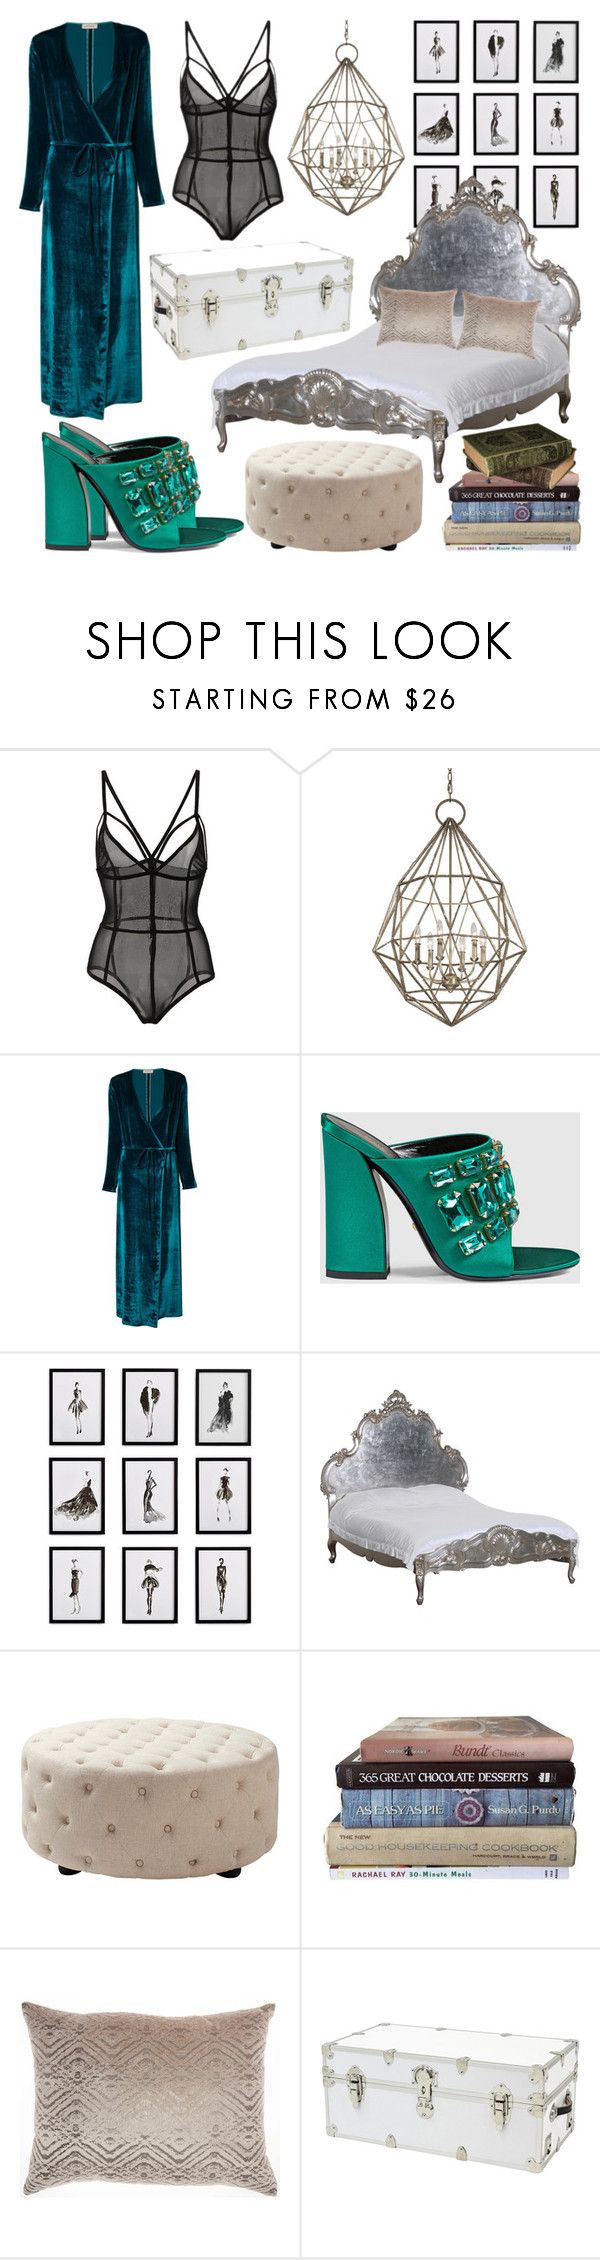 """Every Cloud Has a Silver Lining"" by heybigtrender on Polyvore featuring Feiss, Attico, Gucci, Frontgate and Tadashi"